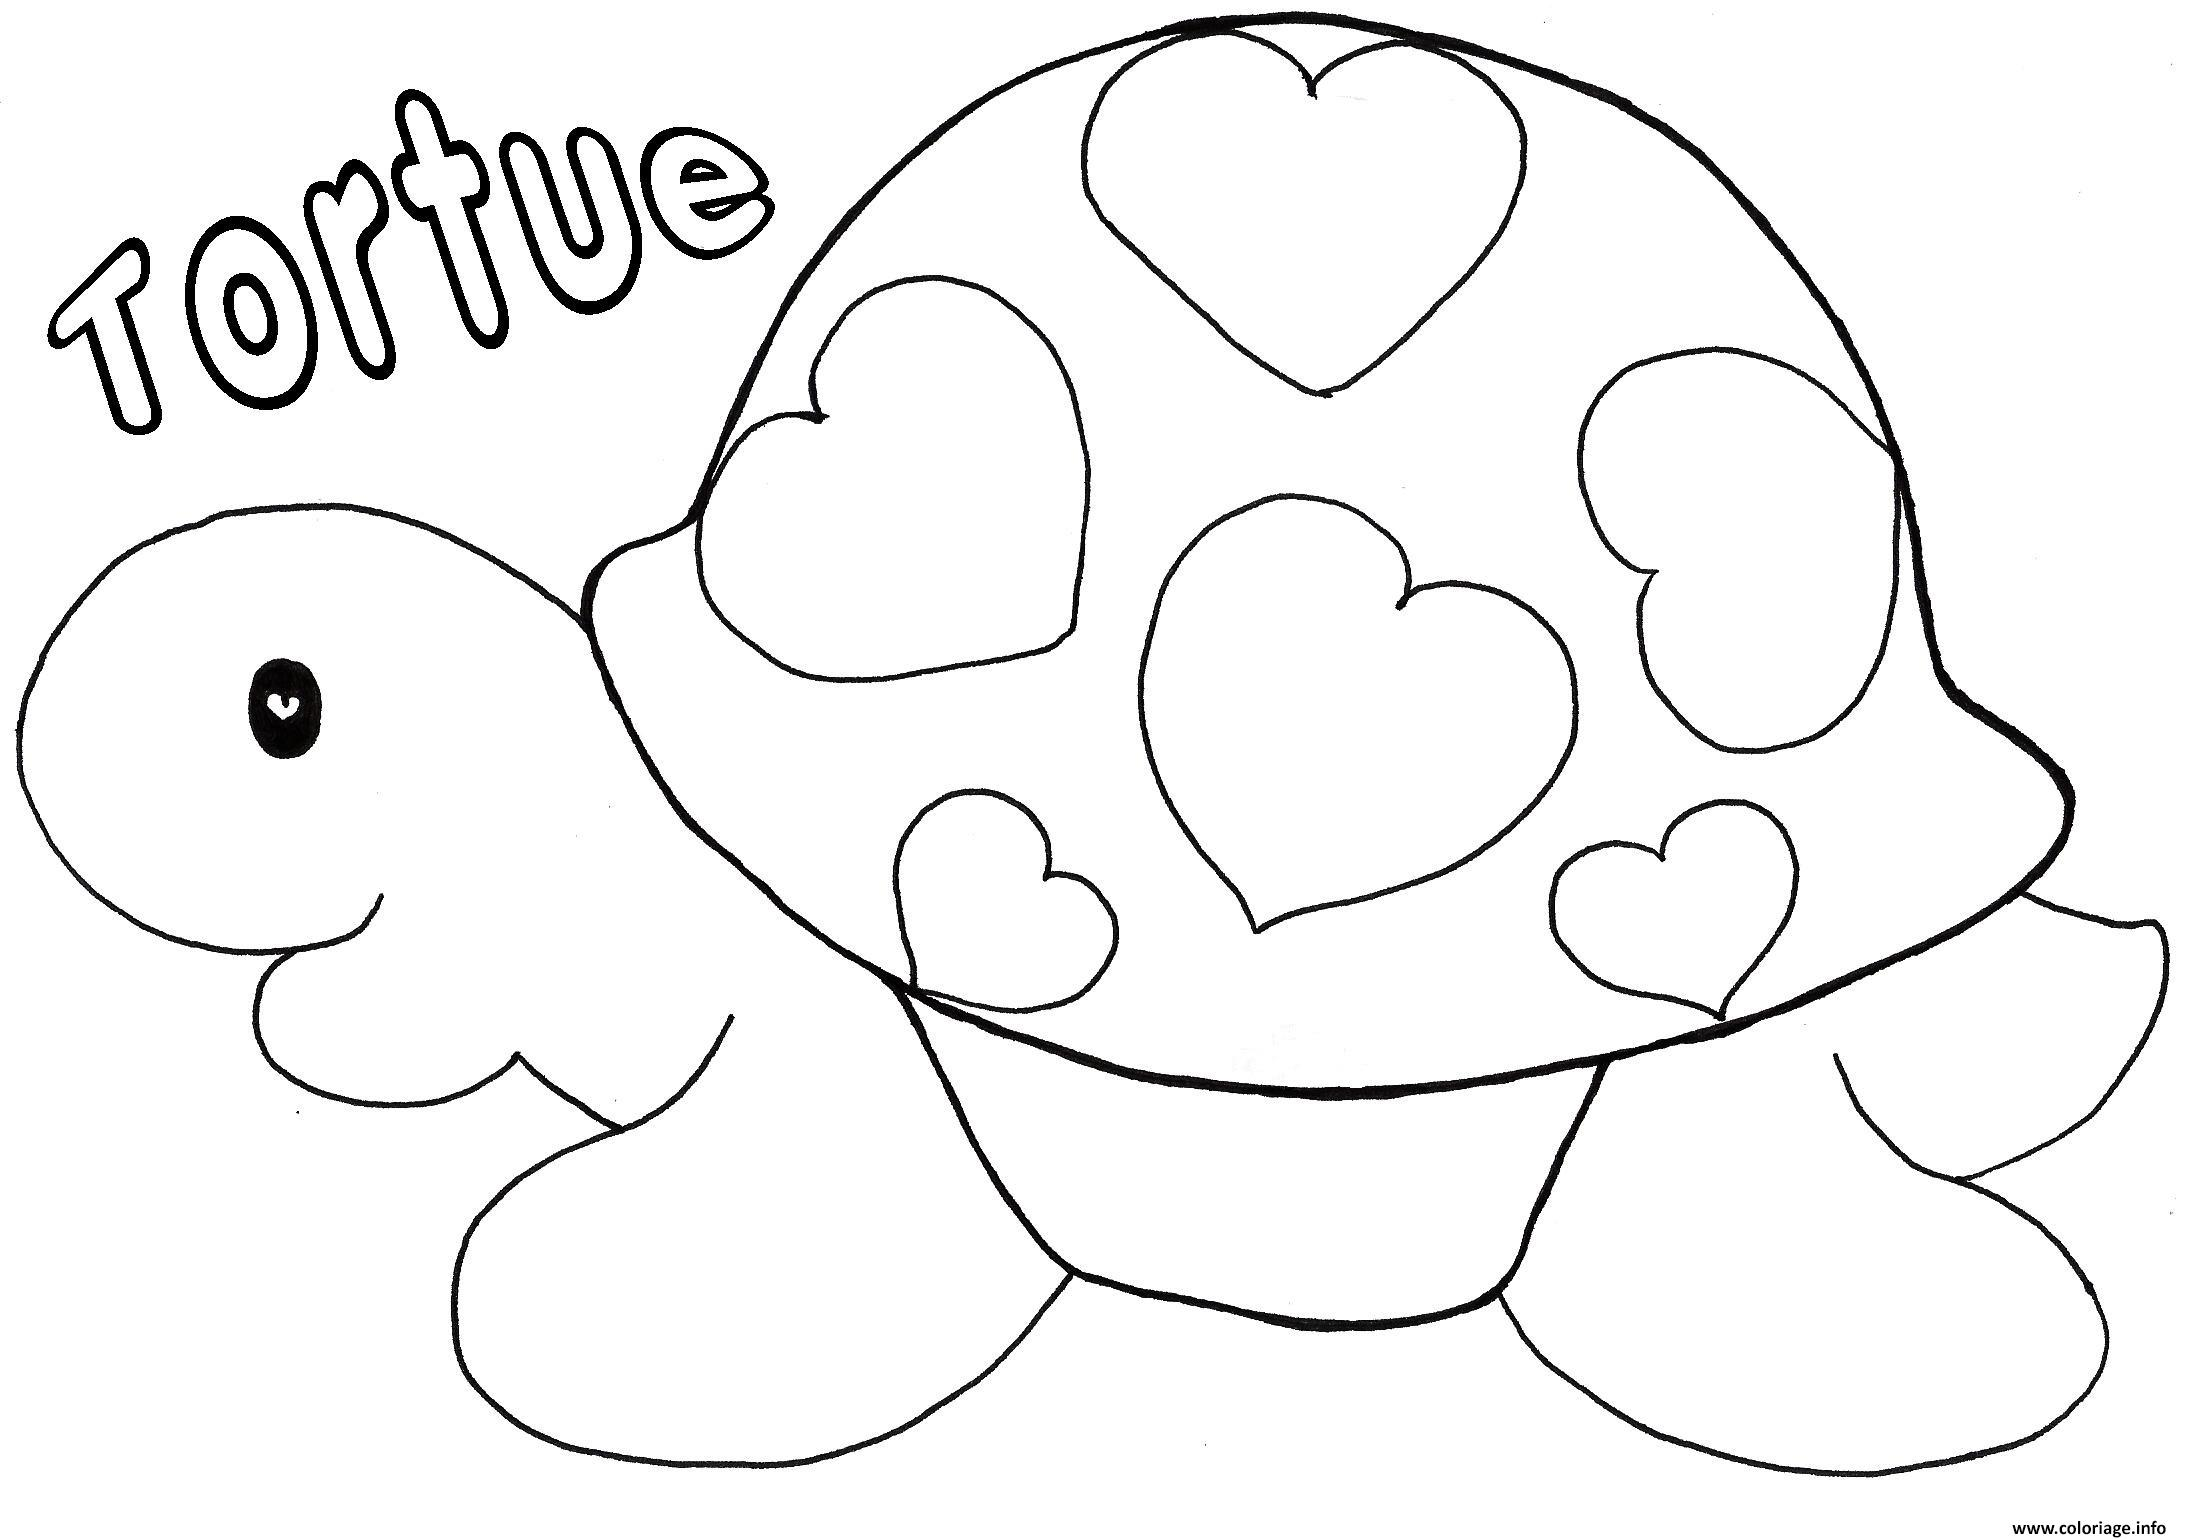 Inspirant Photo De tortue A Colorier